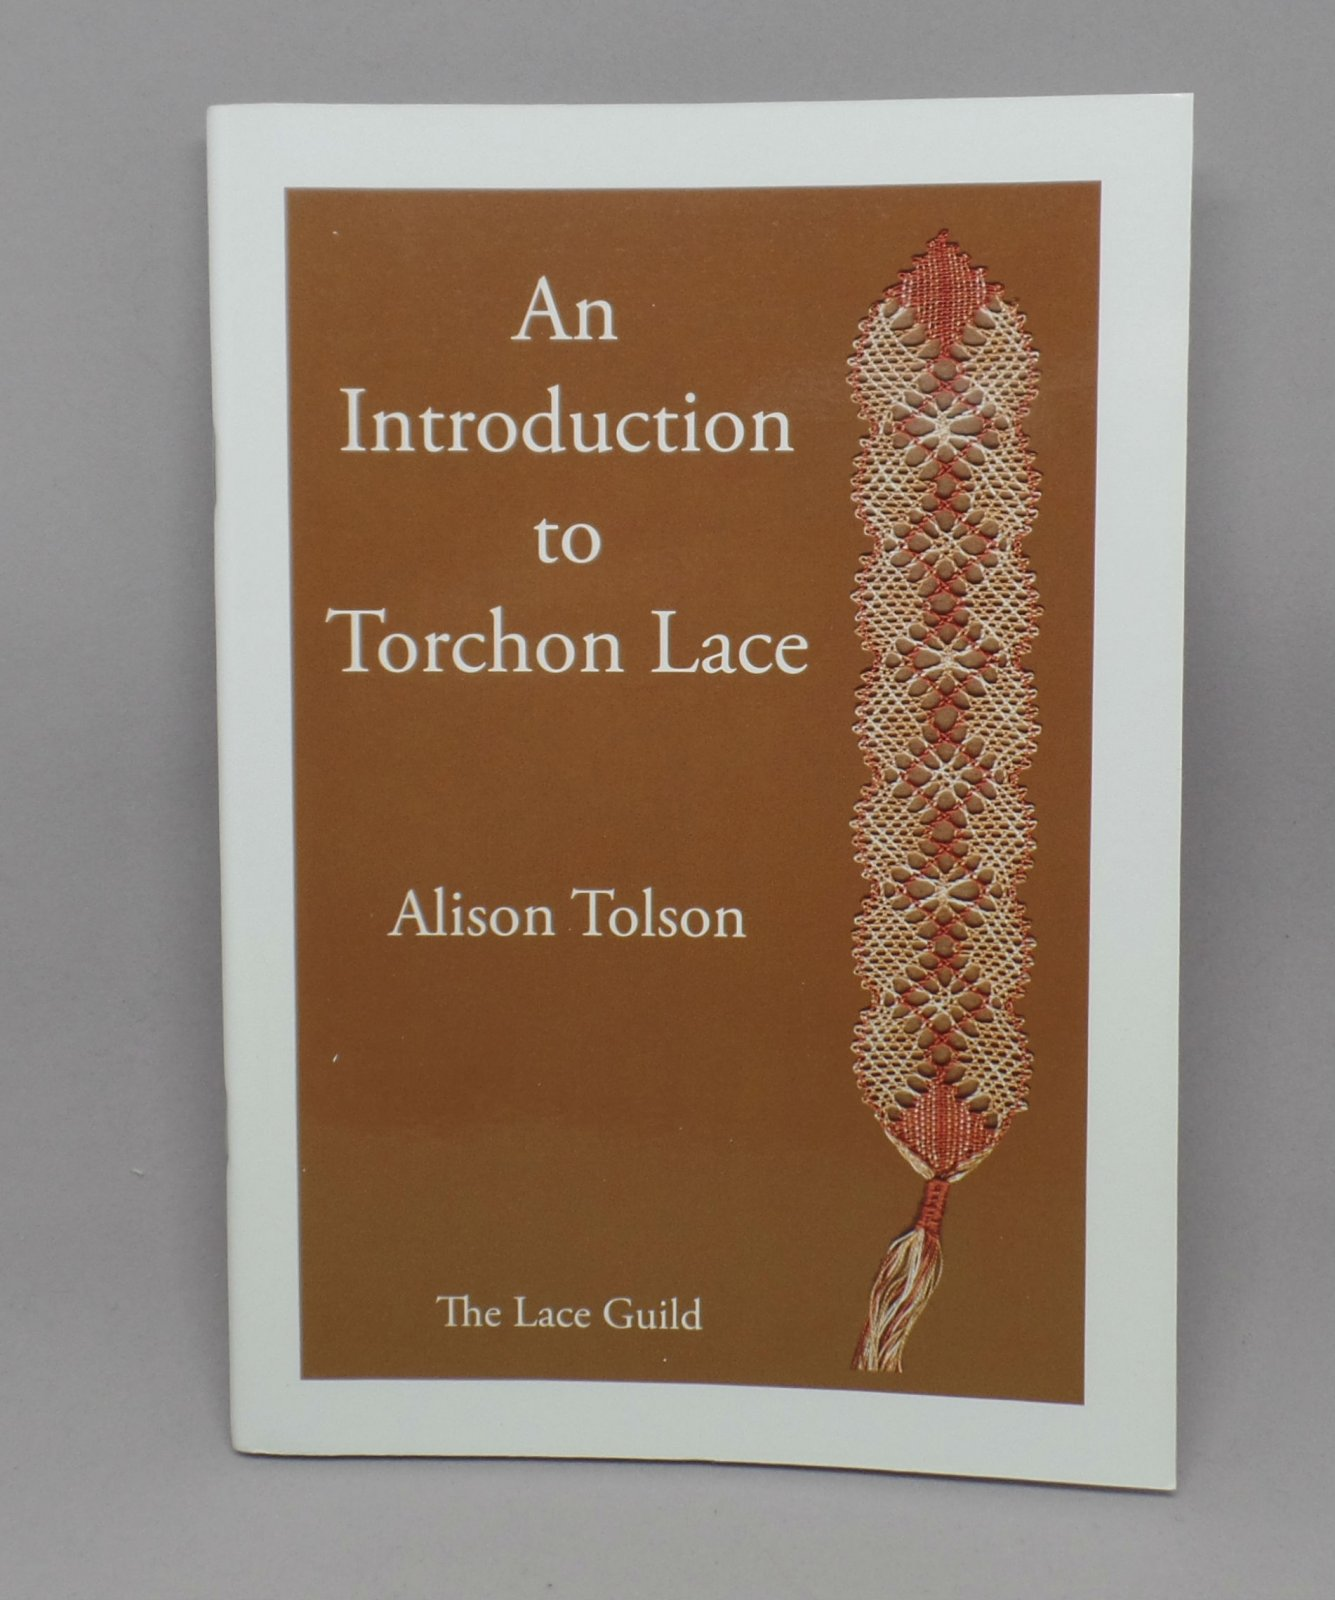 An Introduction to Torchon Lace